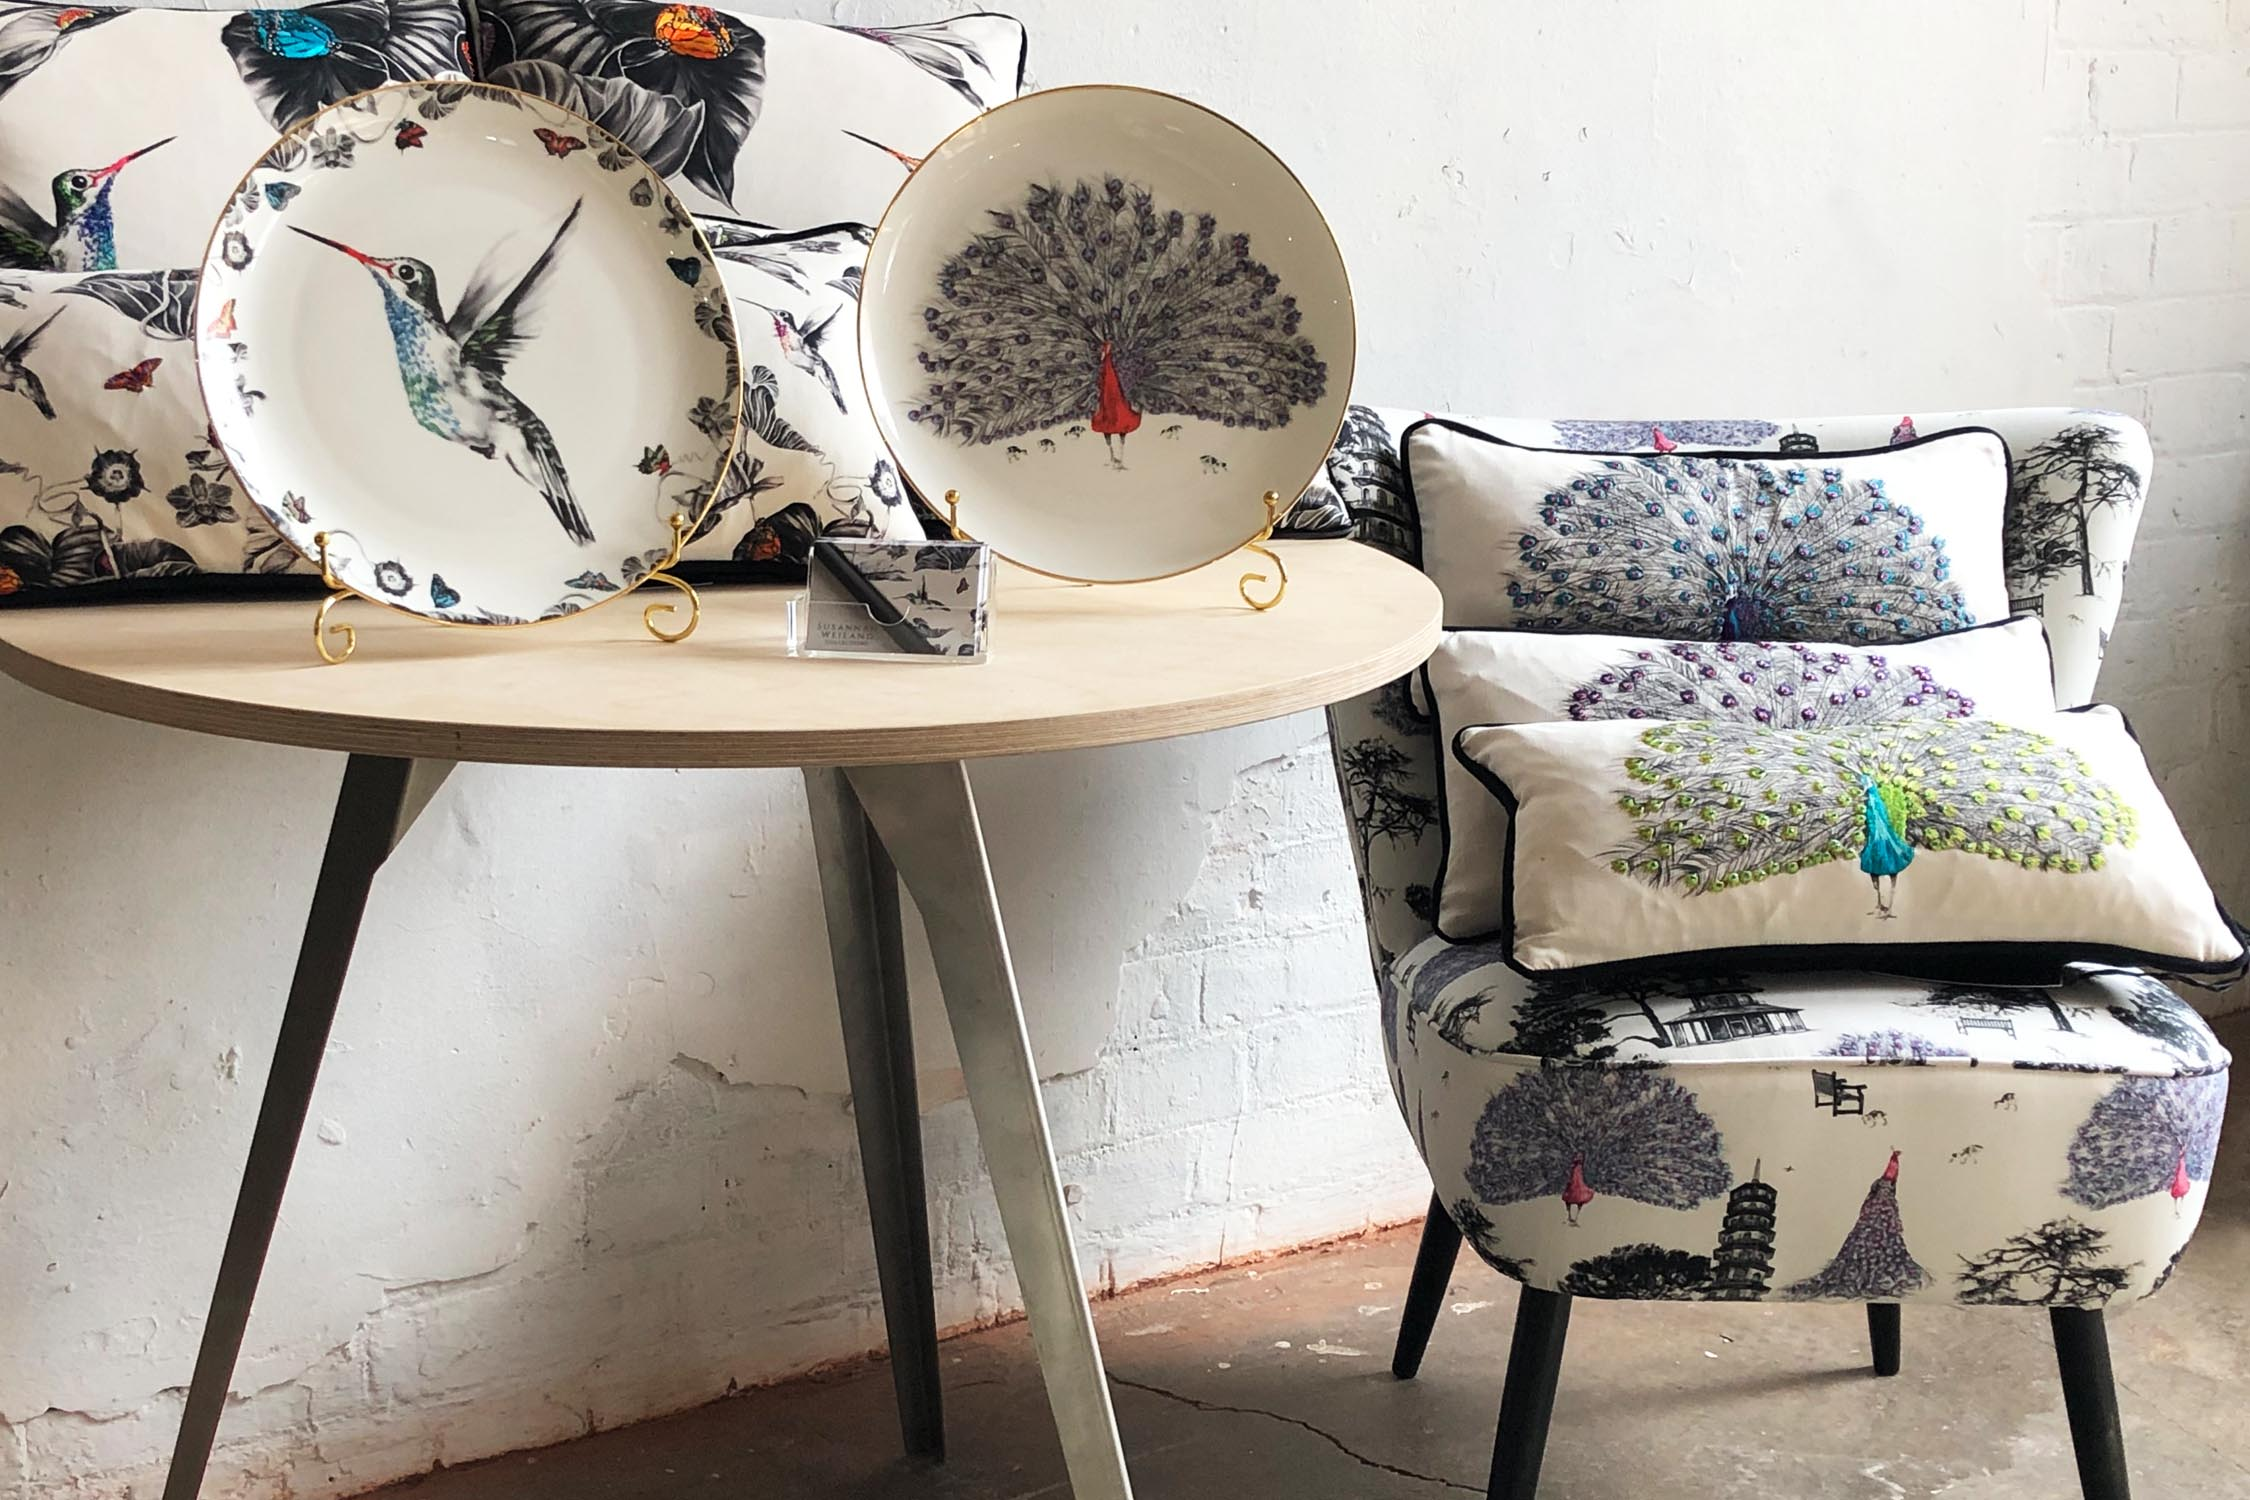 London Craft Week - 9-12 May 2019Barghouse Oxo Tower, London3rd Floor, Room 3